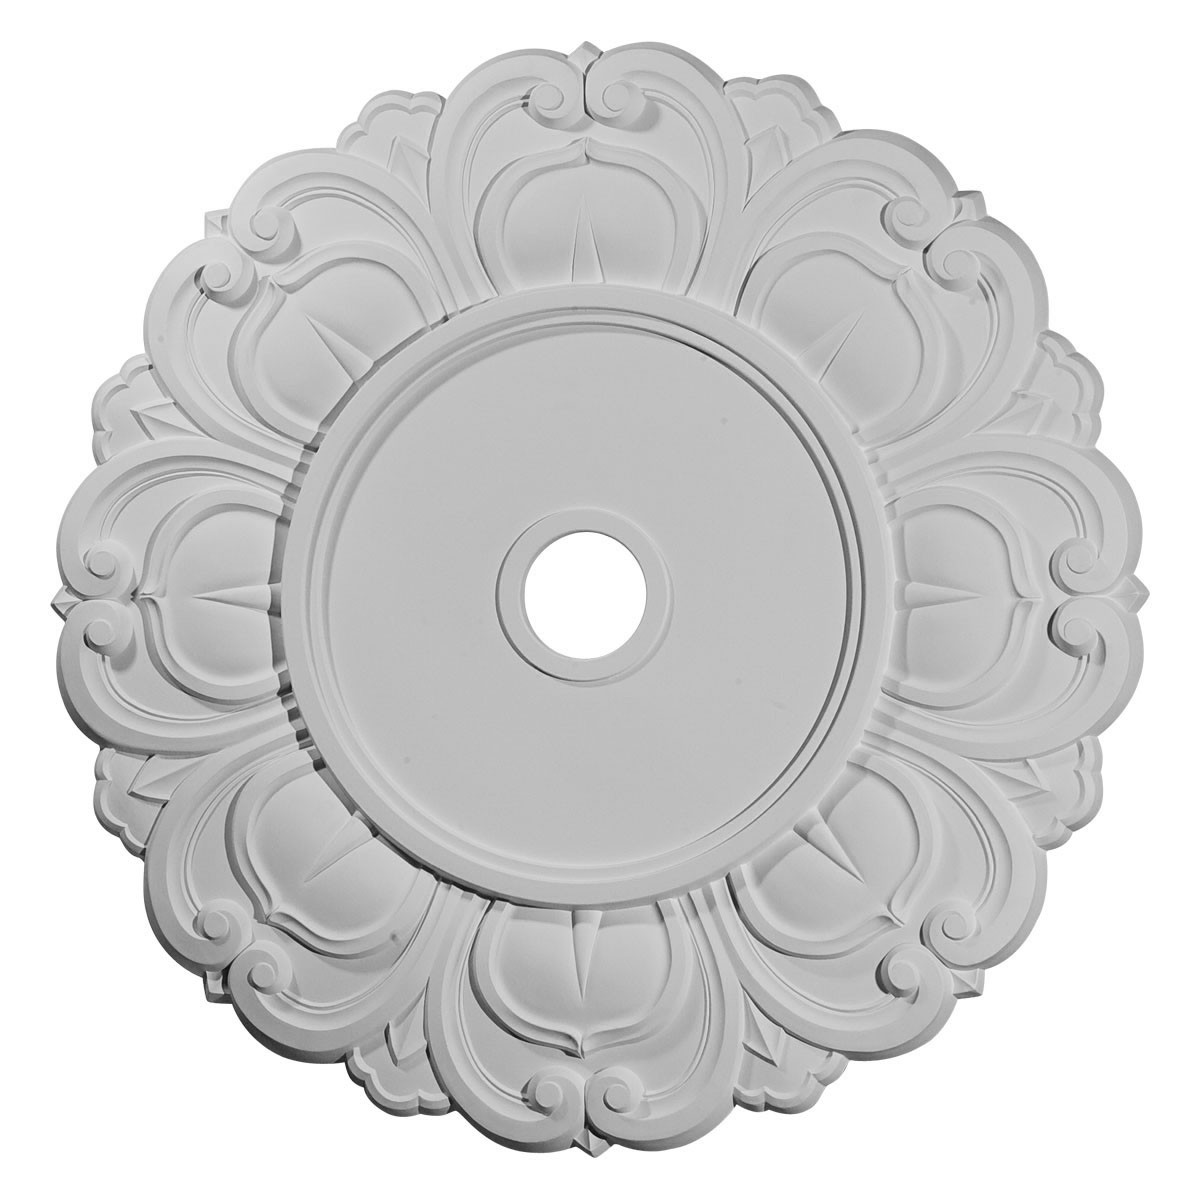 """EM-CM32AN - 32 1/4""""OD x 3 5/8""""ID x 1 1/8""""P Angel Ceiling Medallion (Fits Canopies up to 15 3/4"""")"""